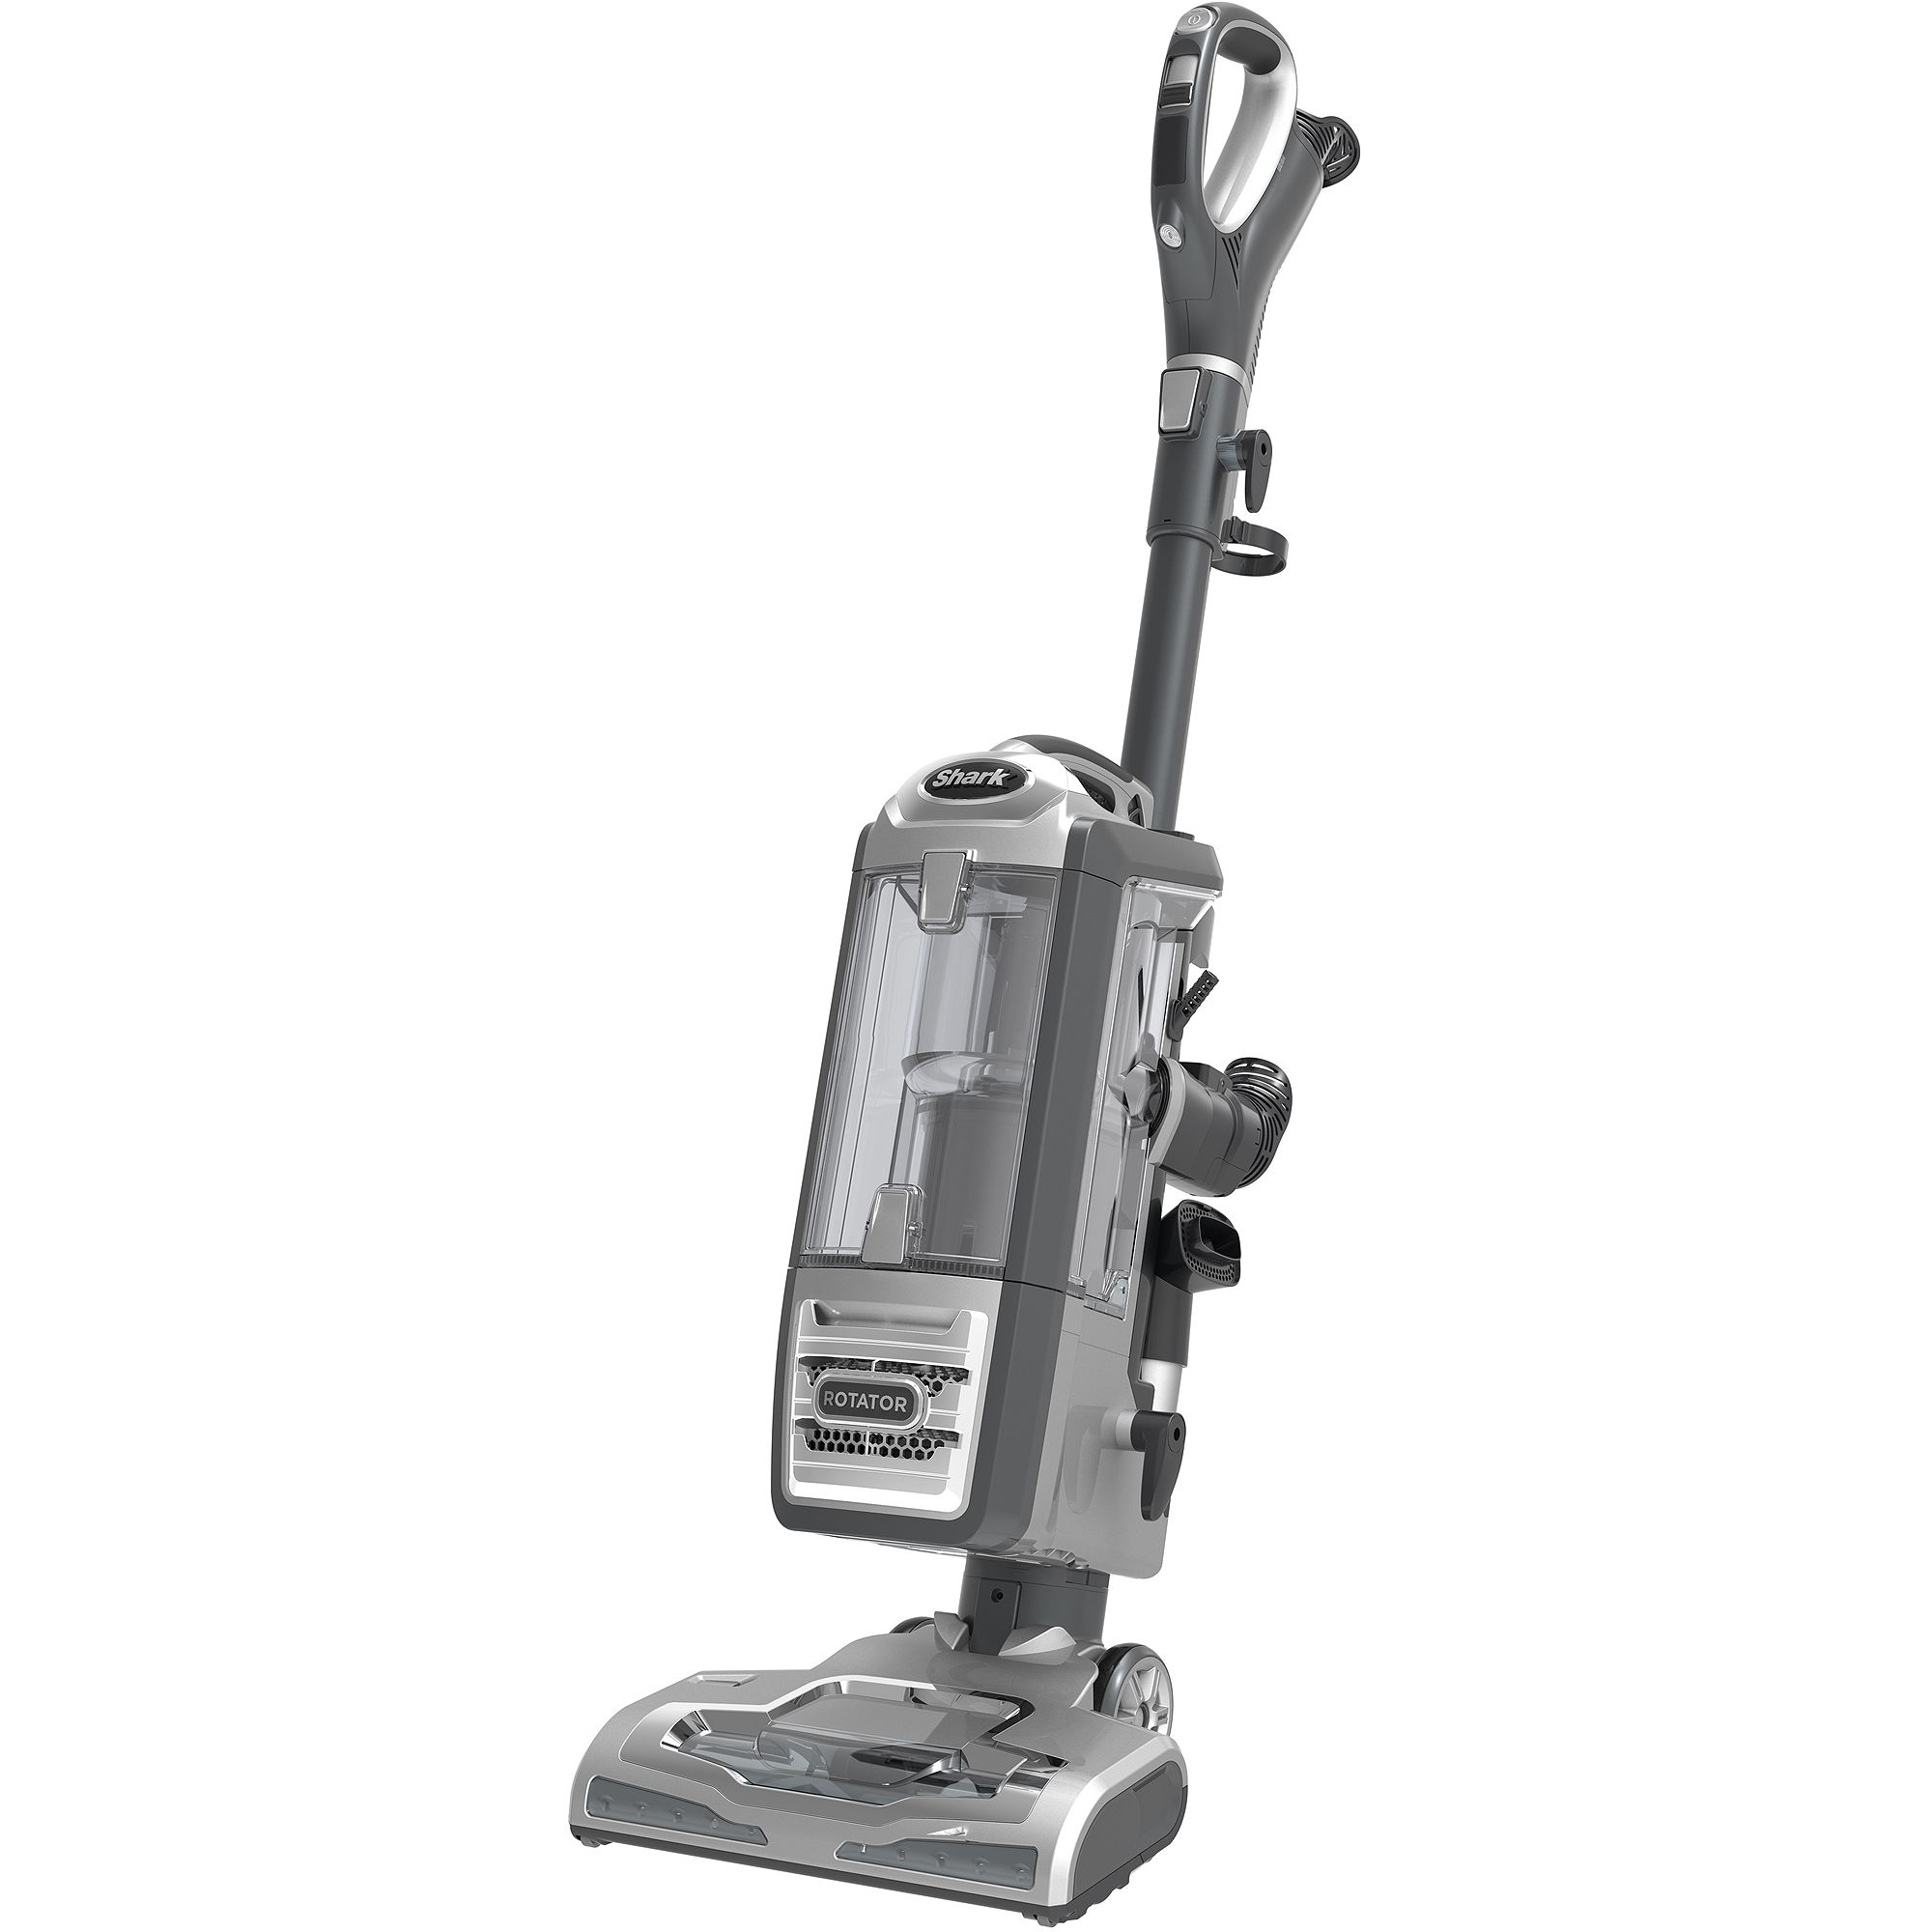 Shark Rotator Powered Lift Away Bagless Vacuum Nv650 청소기